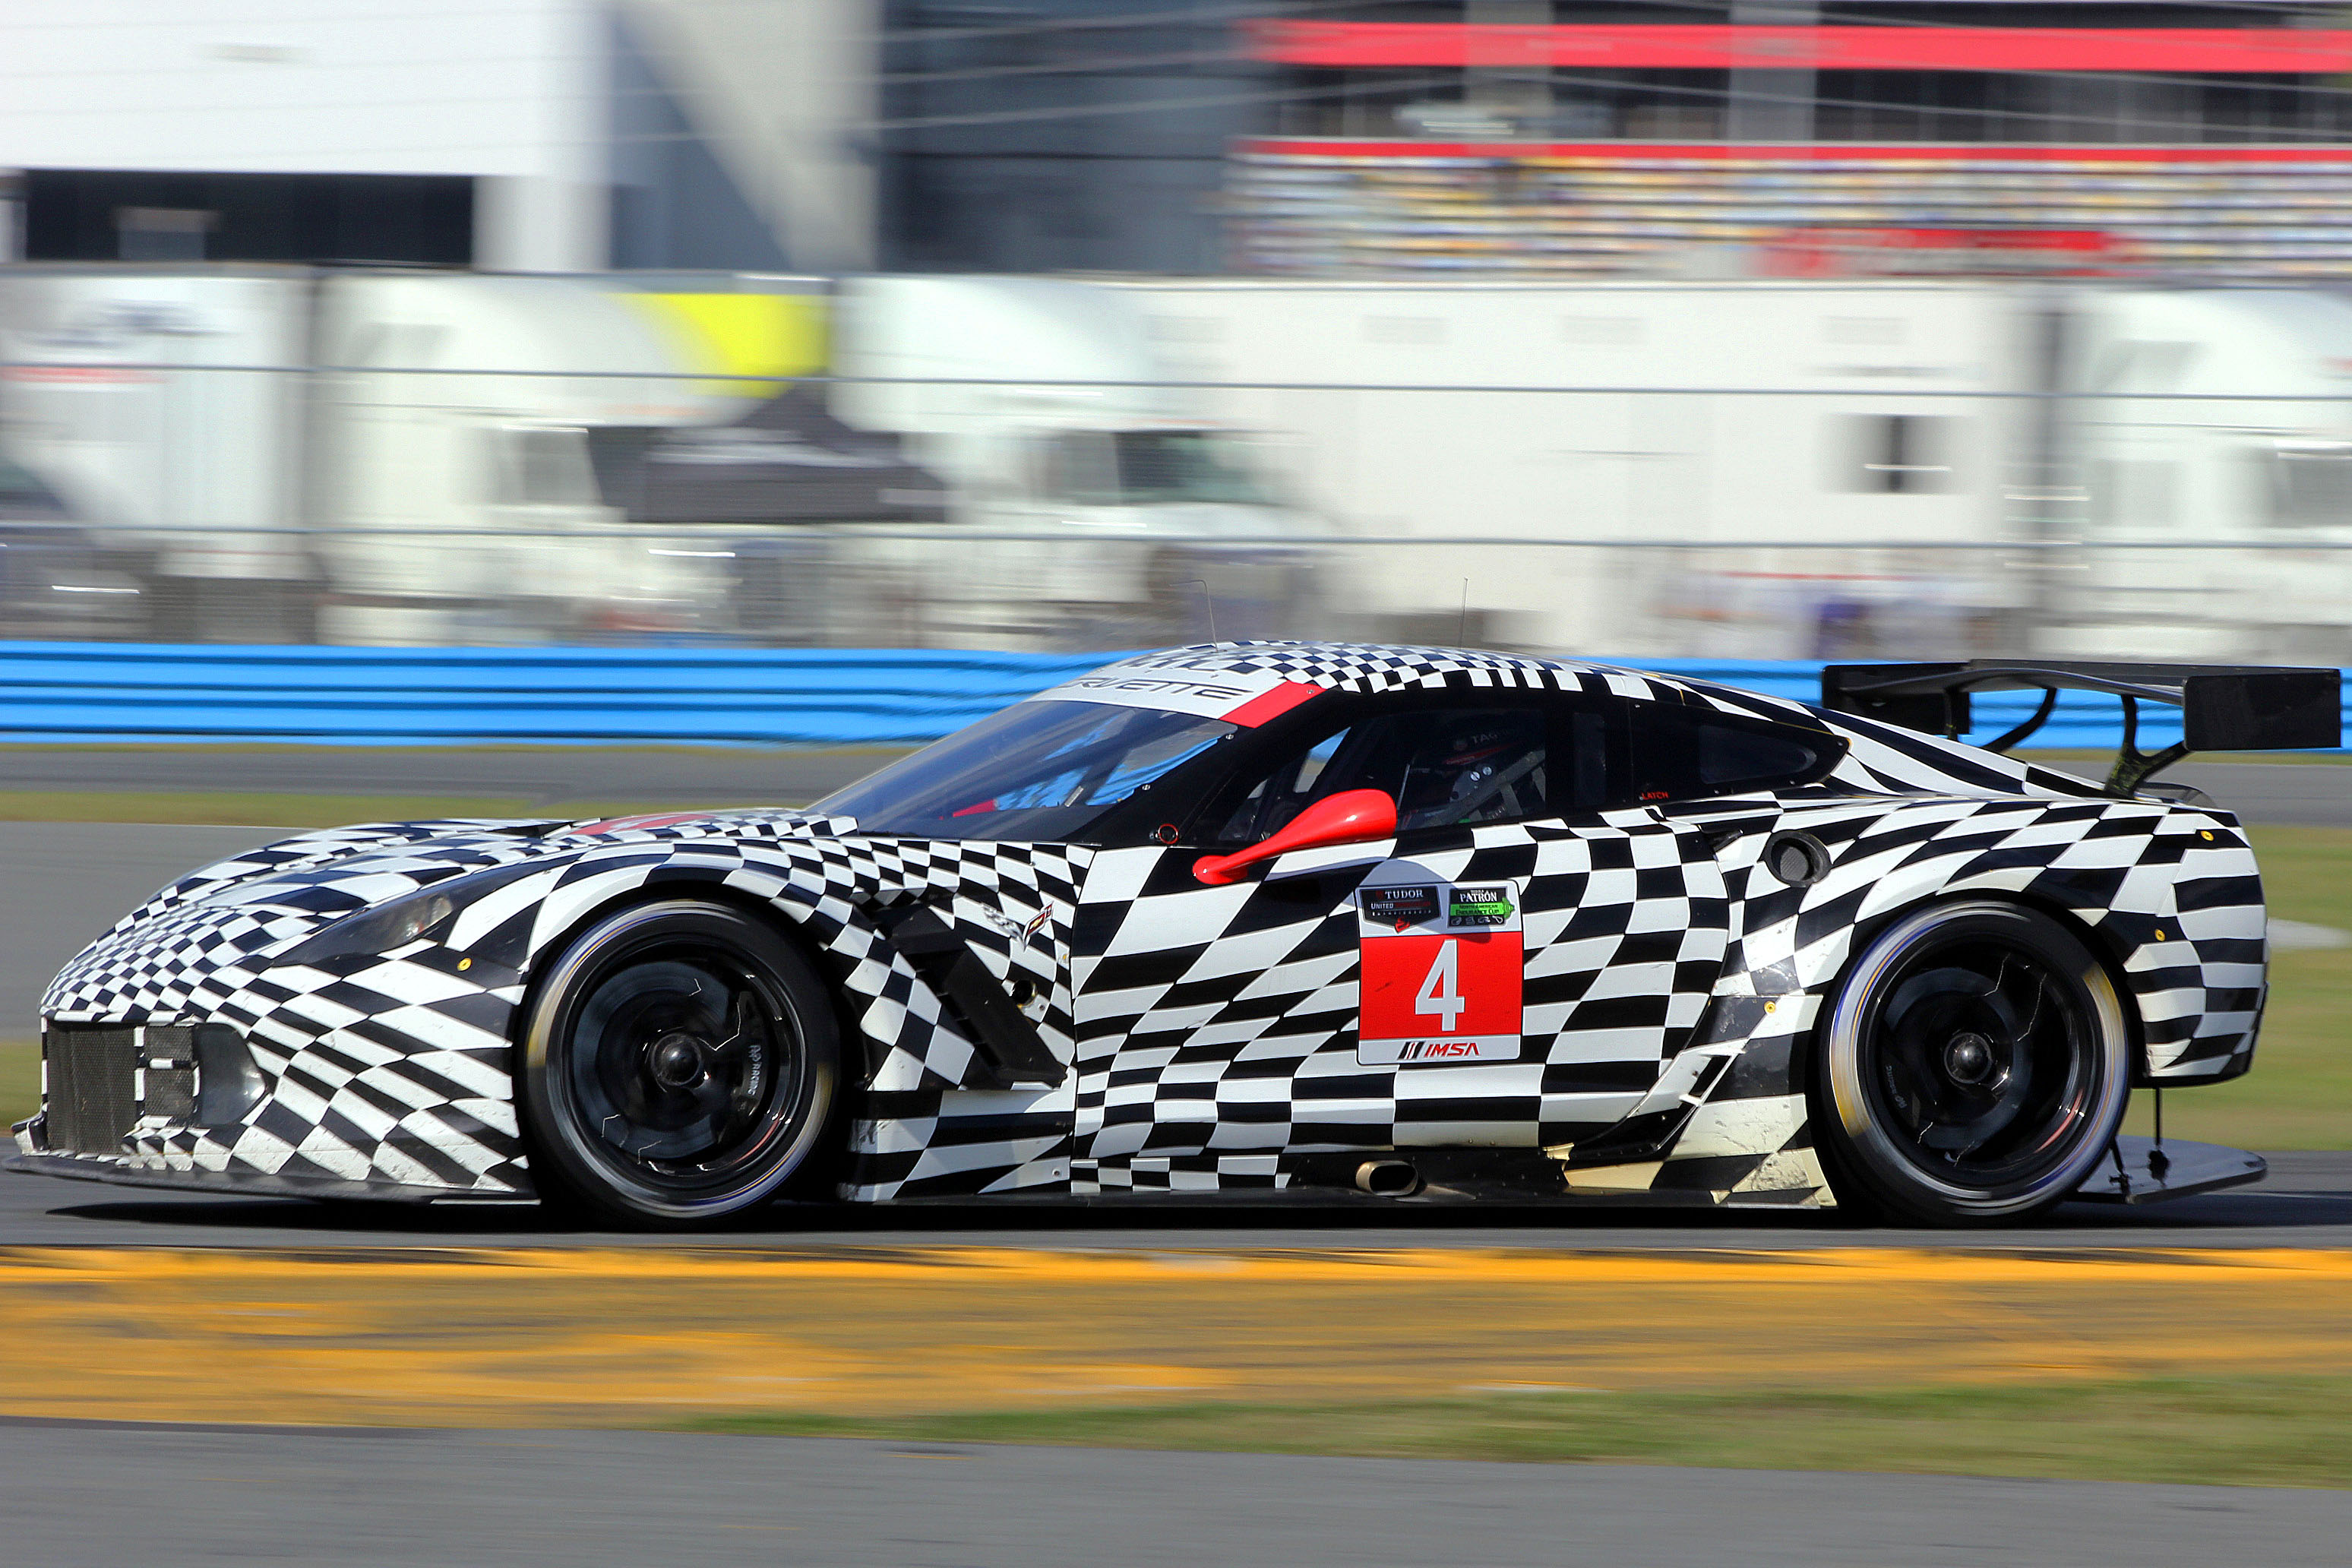 The new Corvette Racing C7.Rs were first and third quickest in the session. (Chris Jasurek/Epoch Times)